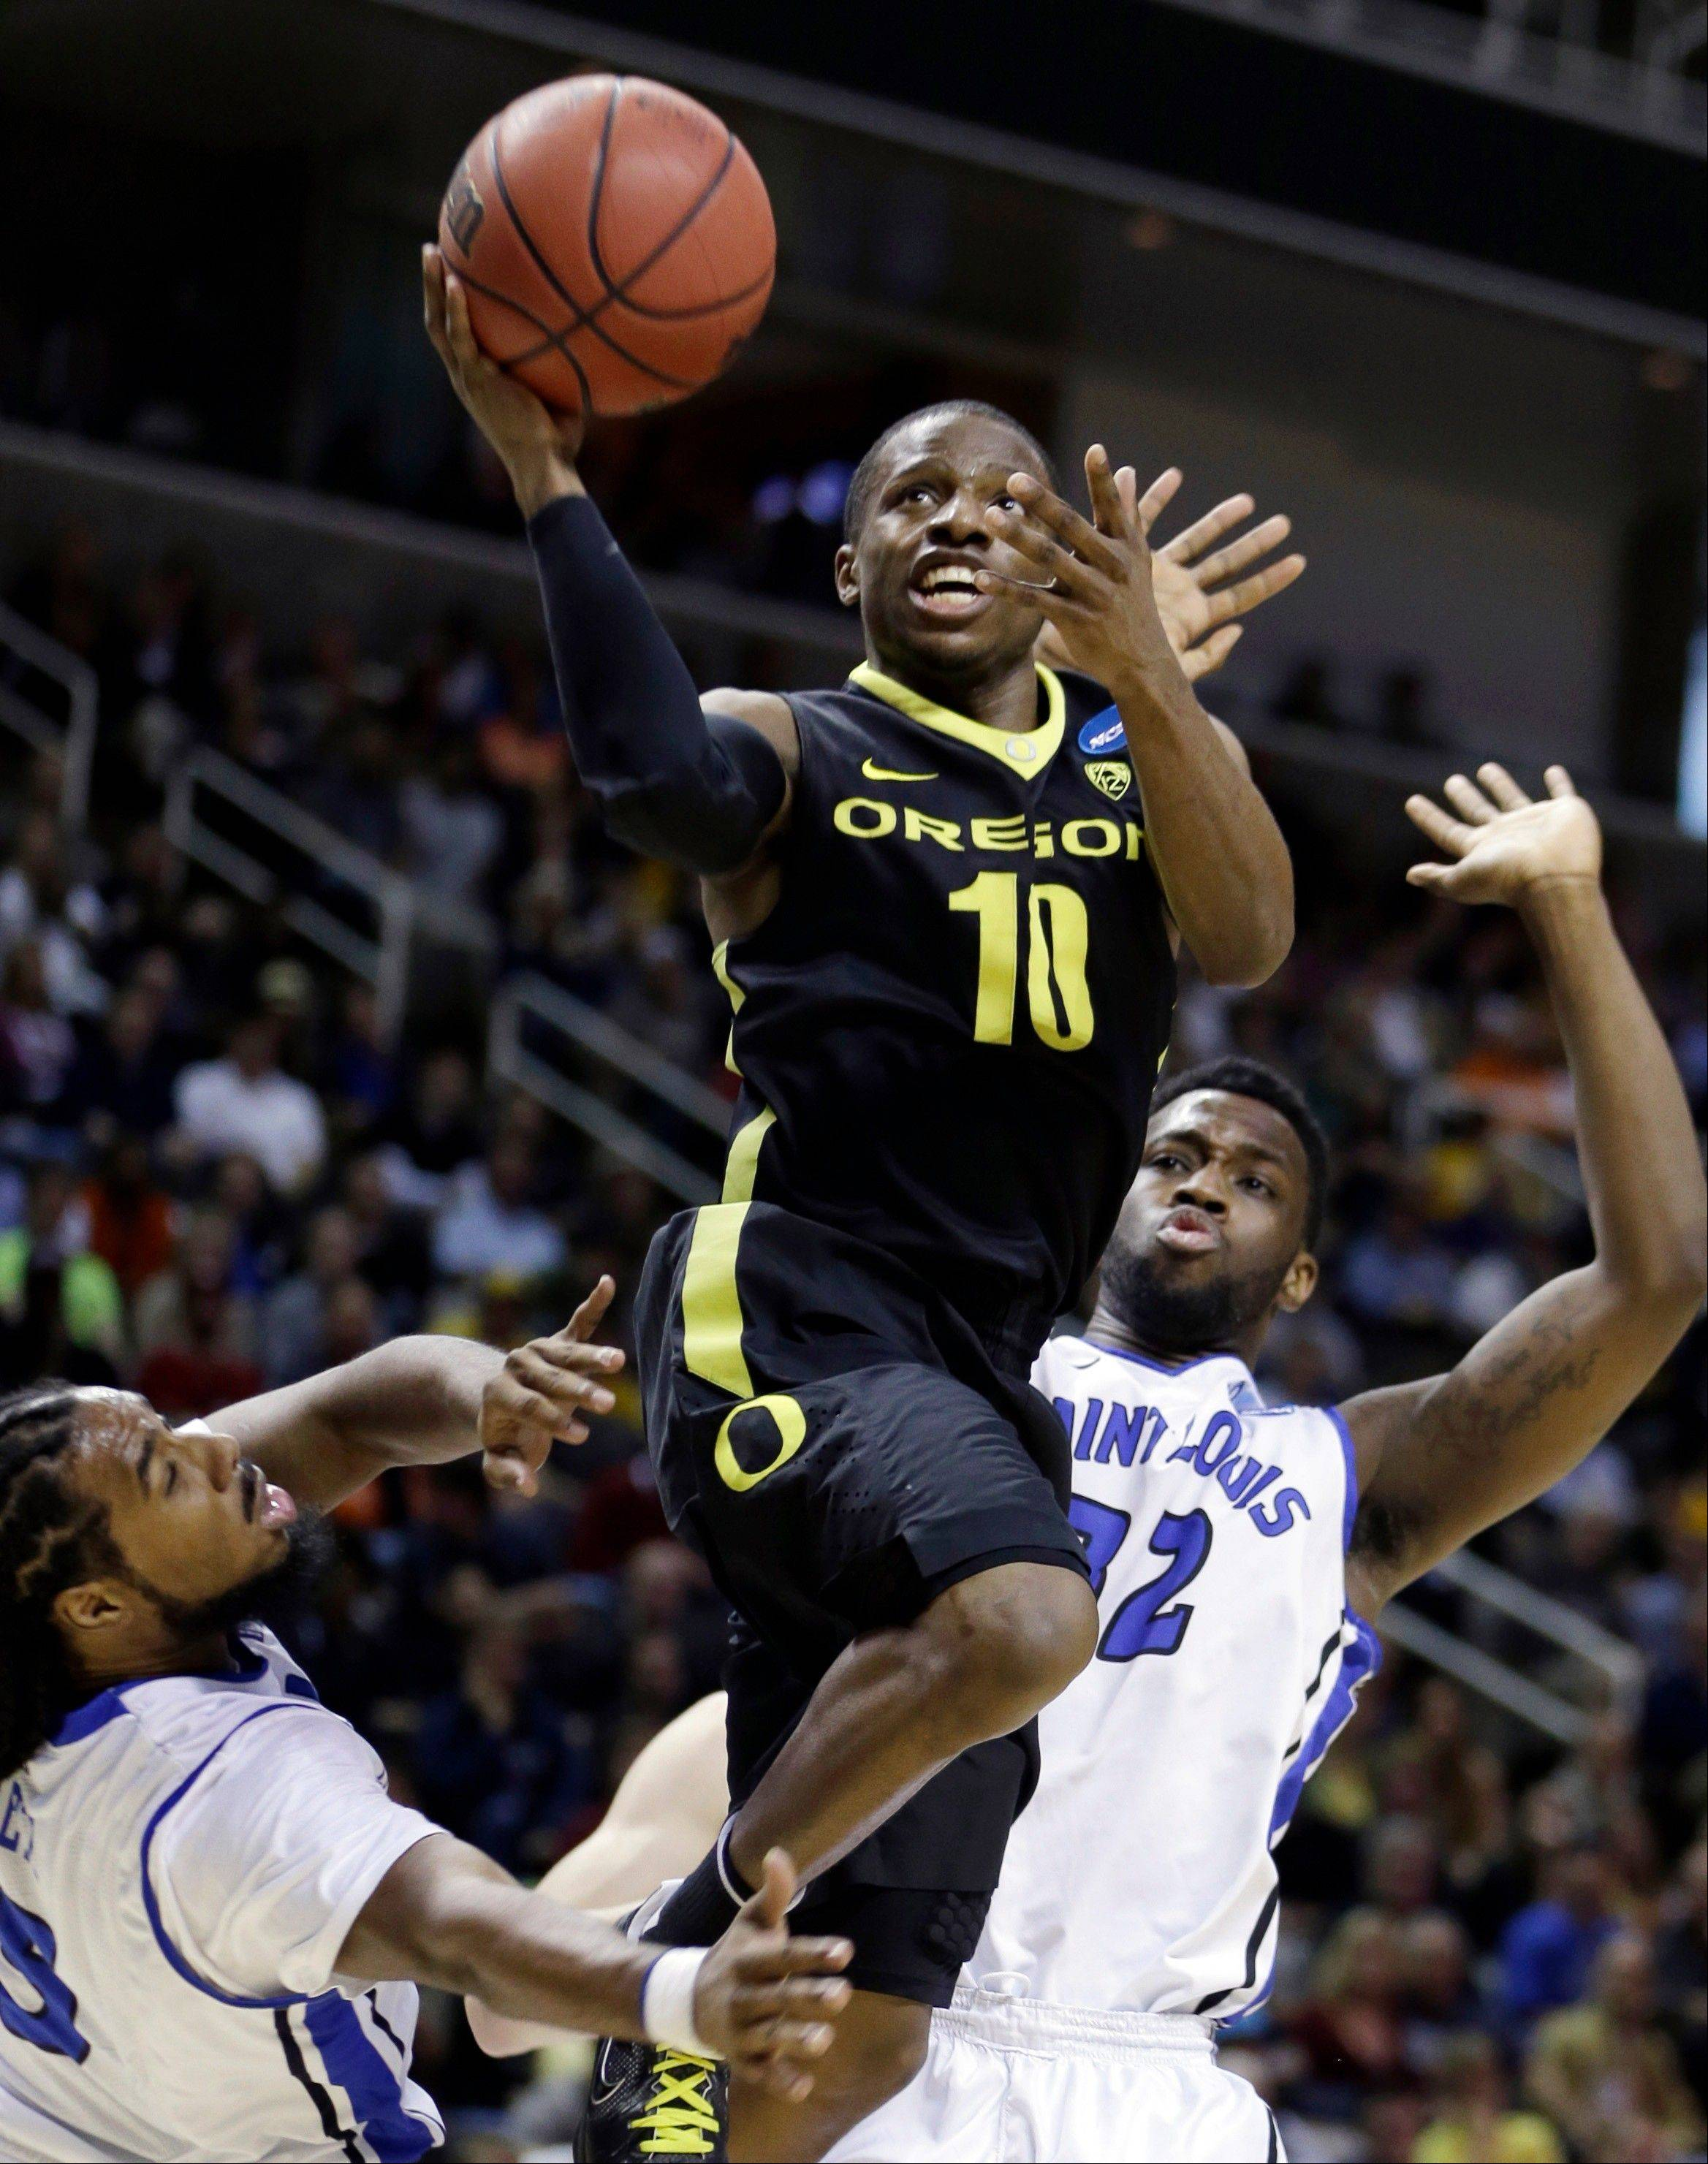 Oregon's Johnathan Loyd (10) lays up a shot over Saint Louis guard Kwamain Mitchell, left, and Cory Remekun (32) during the second half of a third-round game in the NCAA college basketball tournament Saturday, March 23, 2013, in San Jose, Calif. Oregon won the game, 74-57. (AP Photo/Ben Margot)